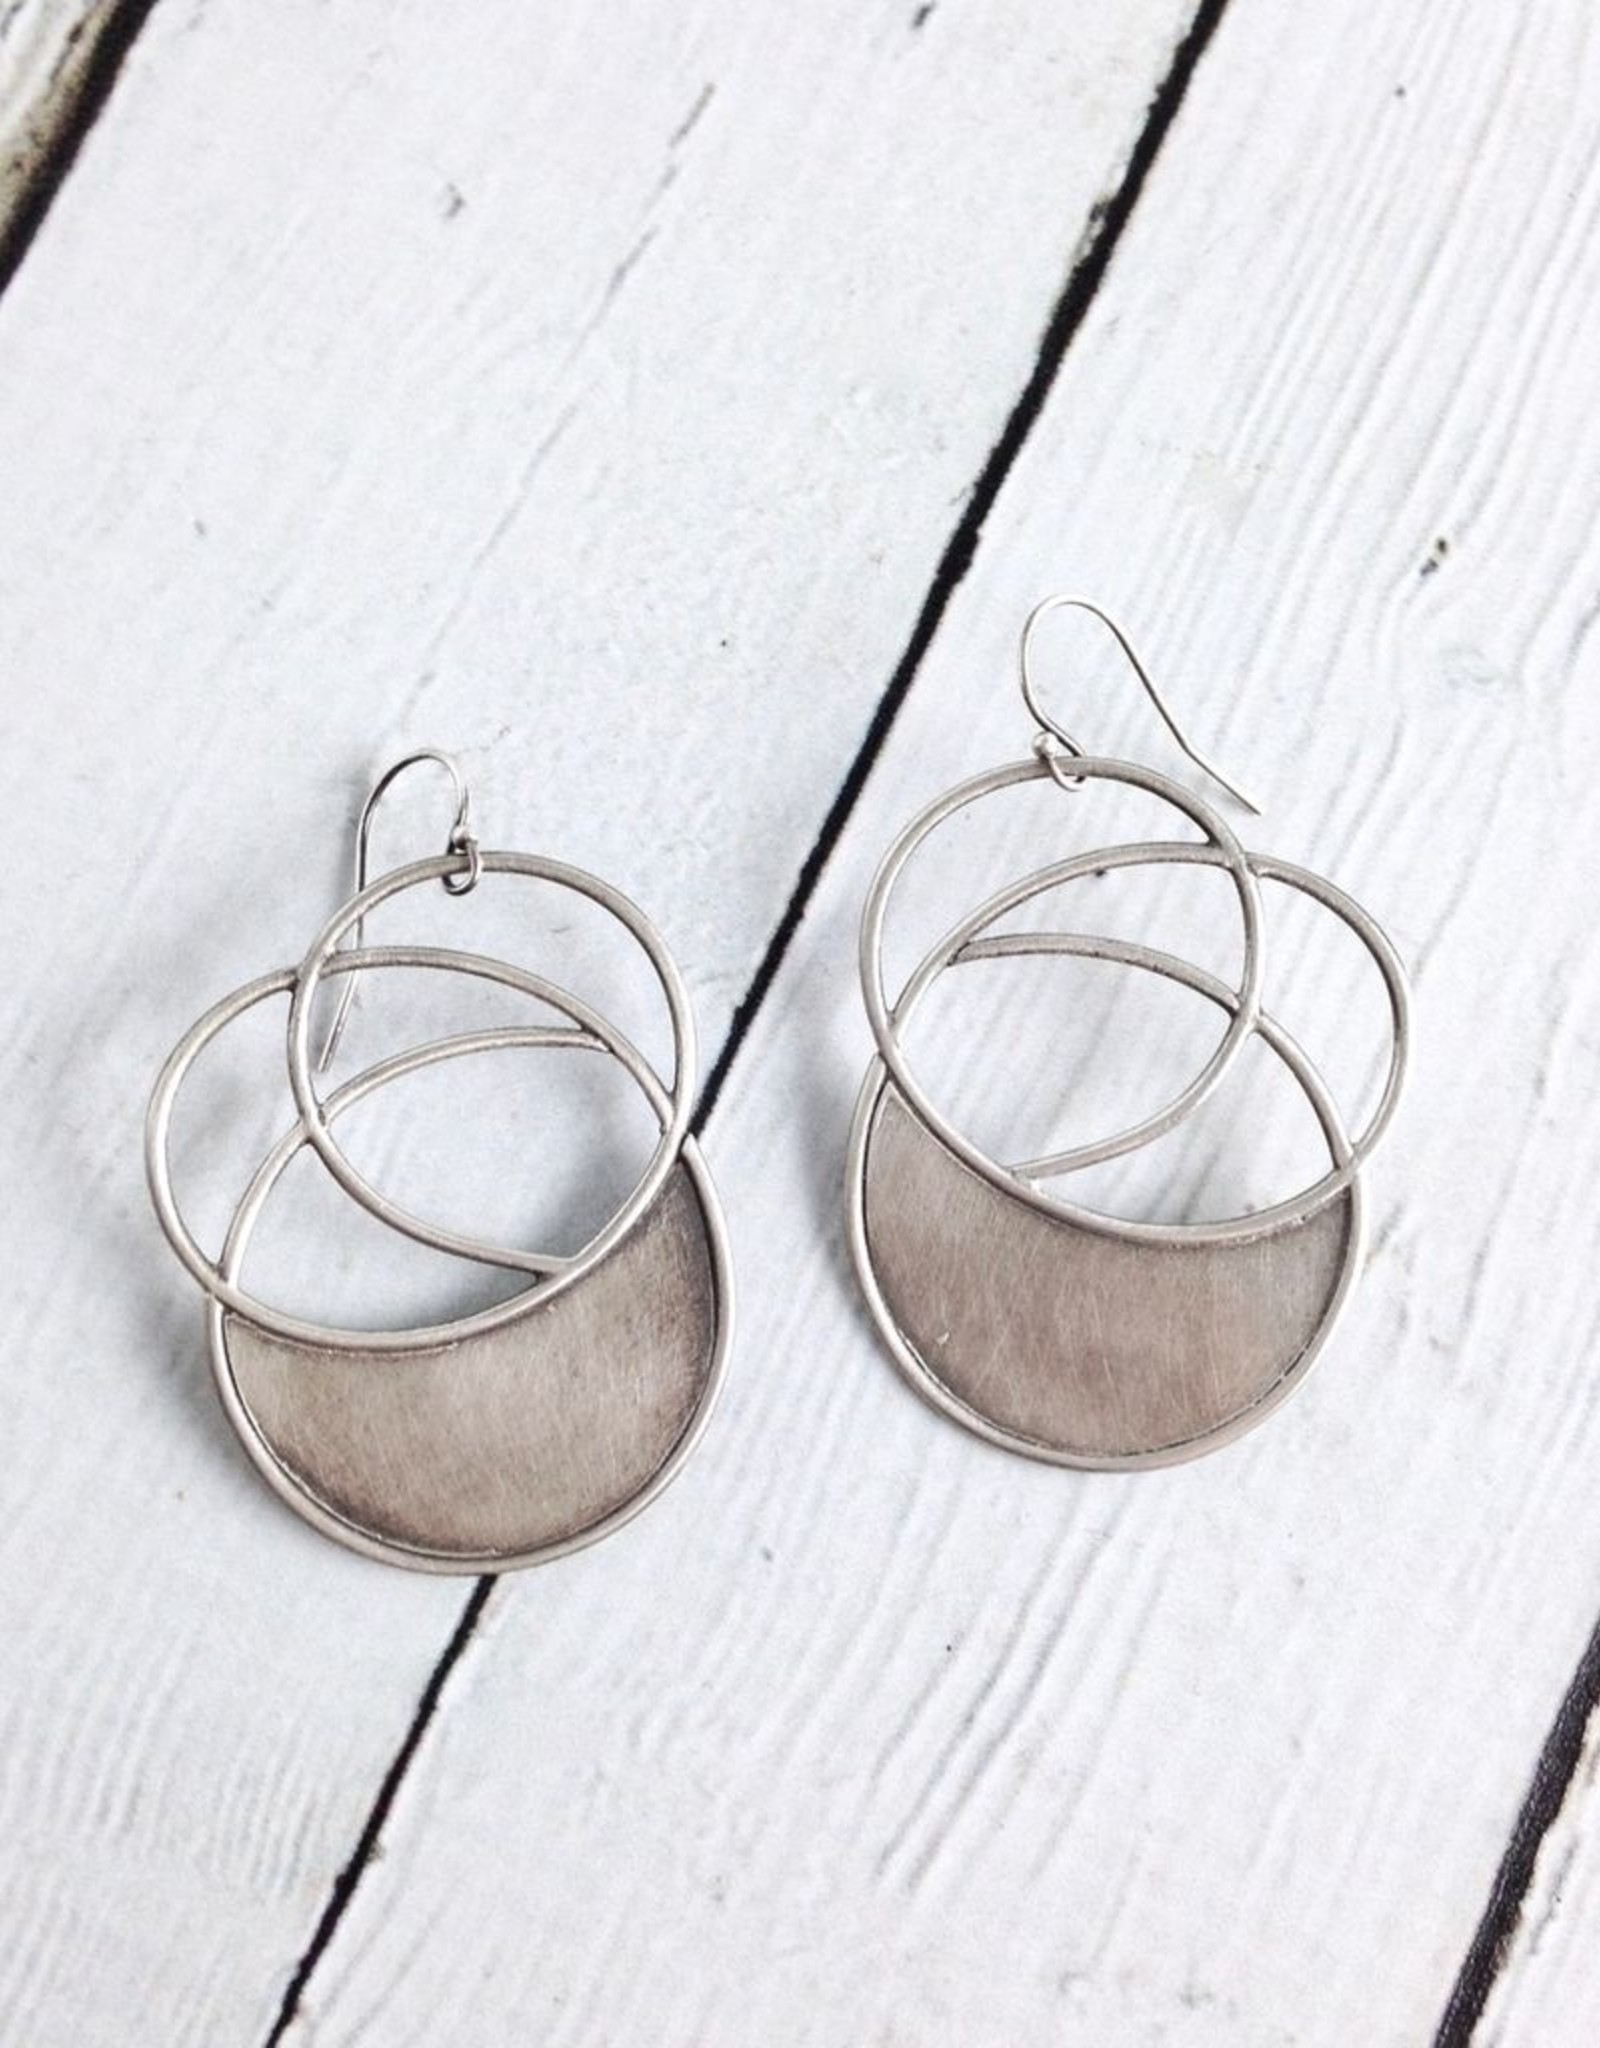 Handmade Sterling Silver Oxidized and textured multi-circle earrings with solid halfmoon by Julia Britell Designs